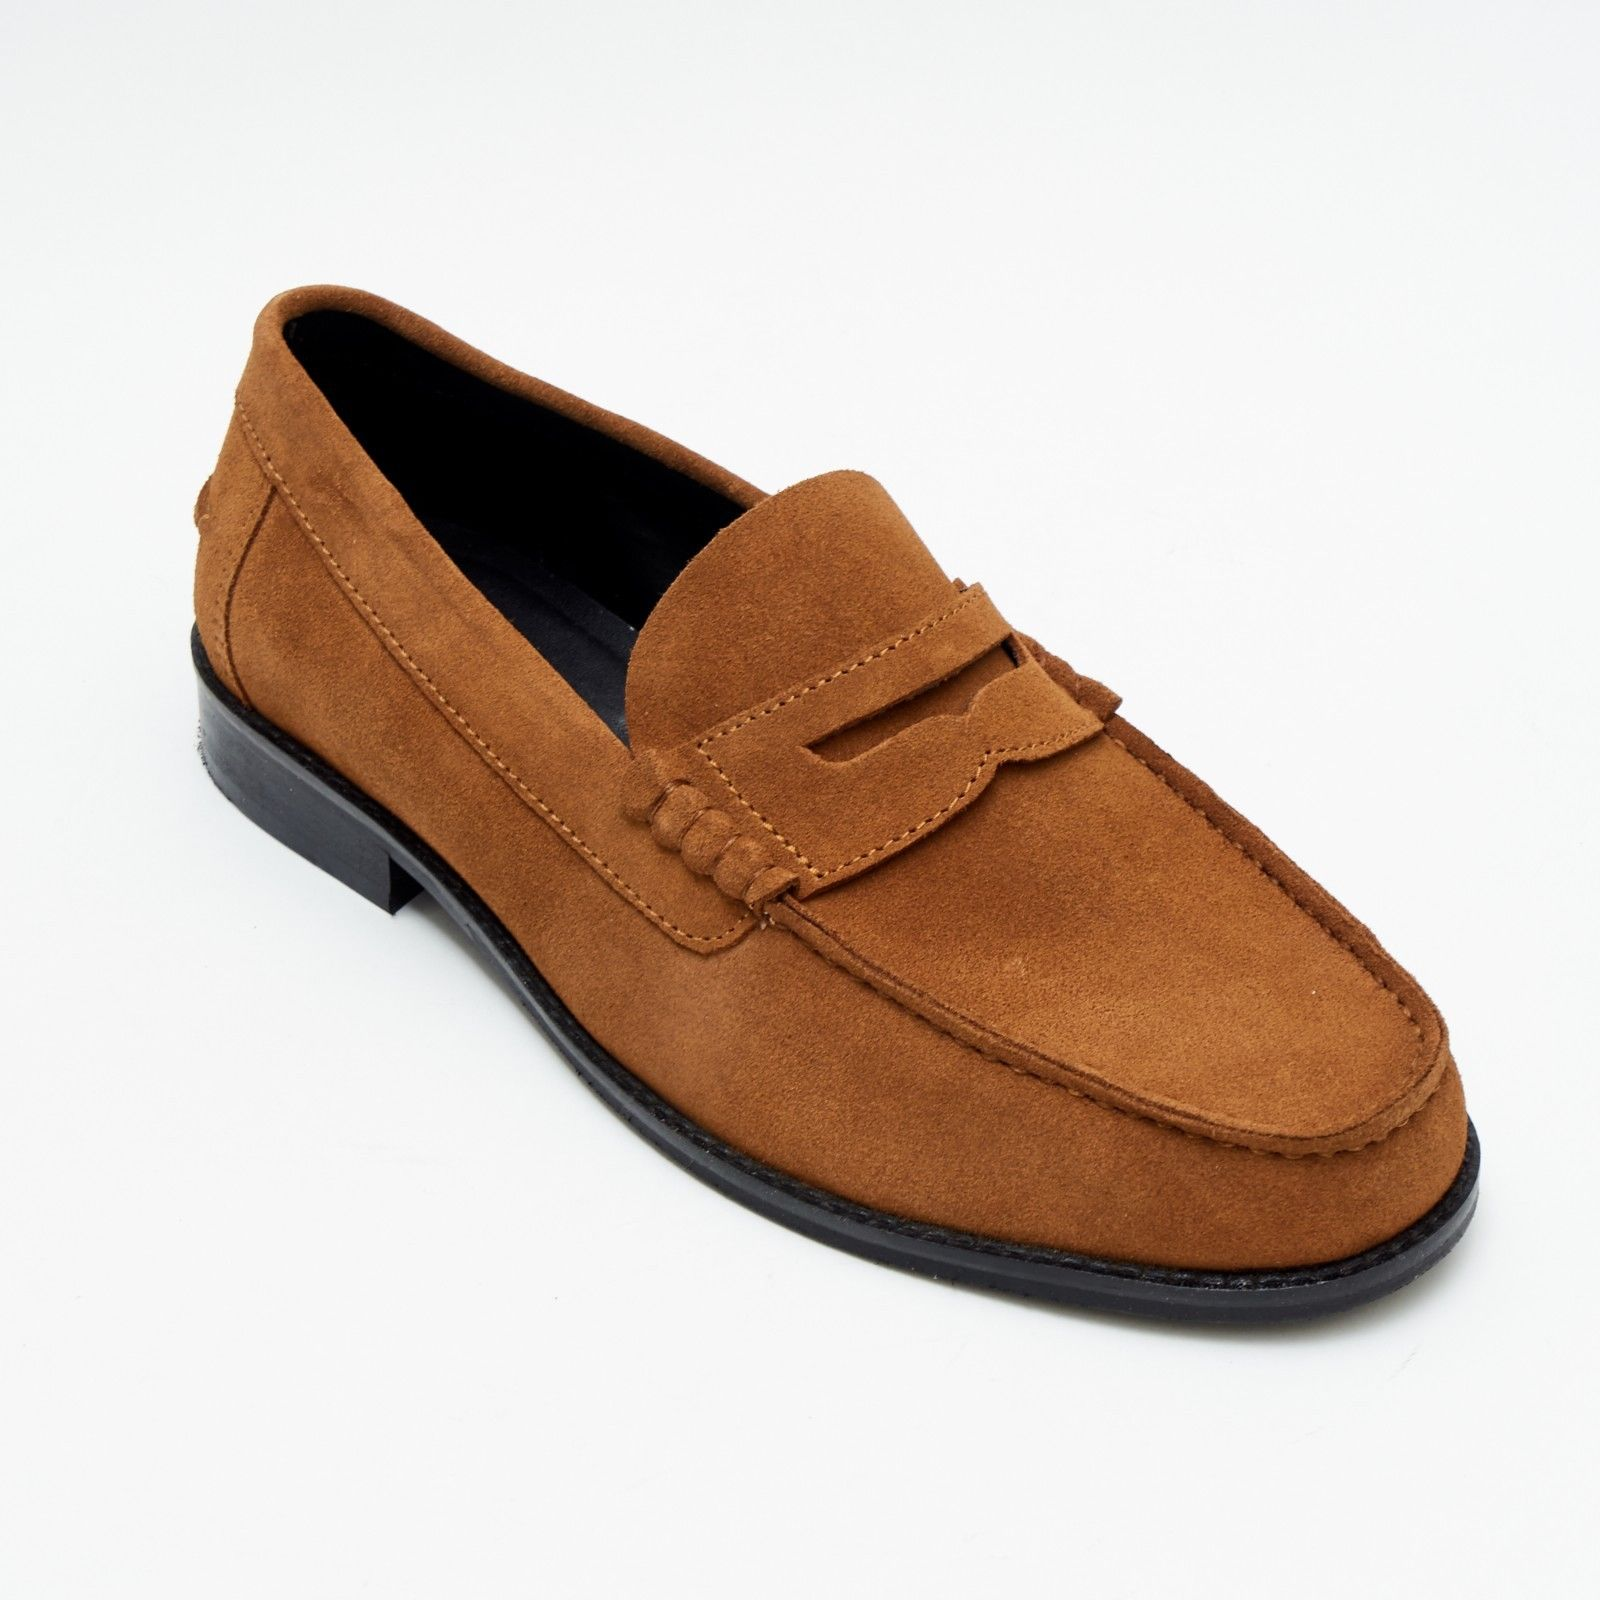 Mens Suede Casual Slip On Shoes - 17925_Tan Suede